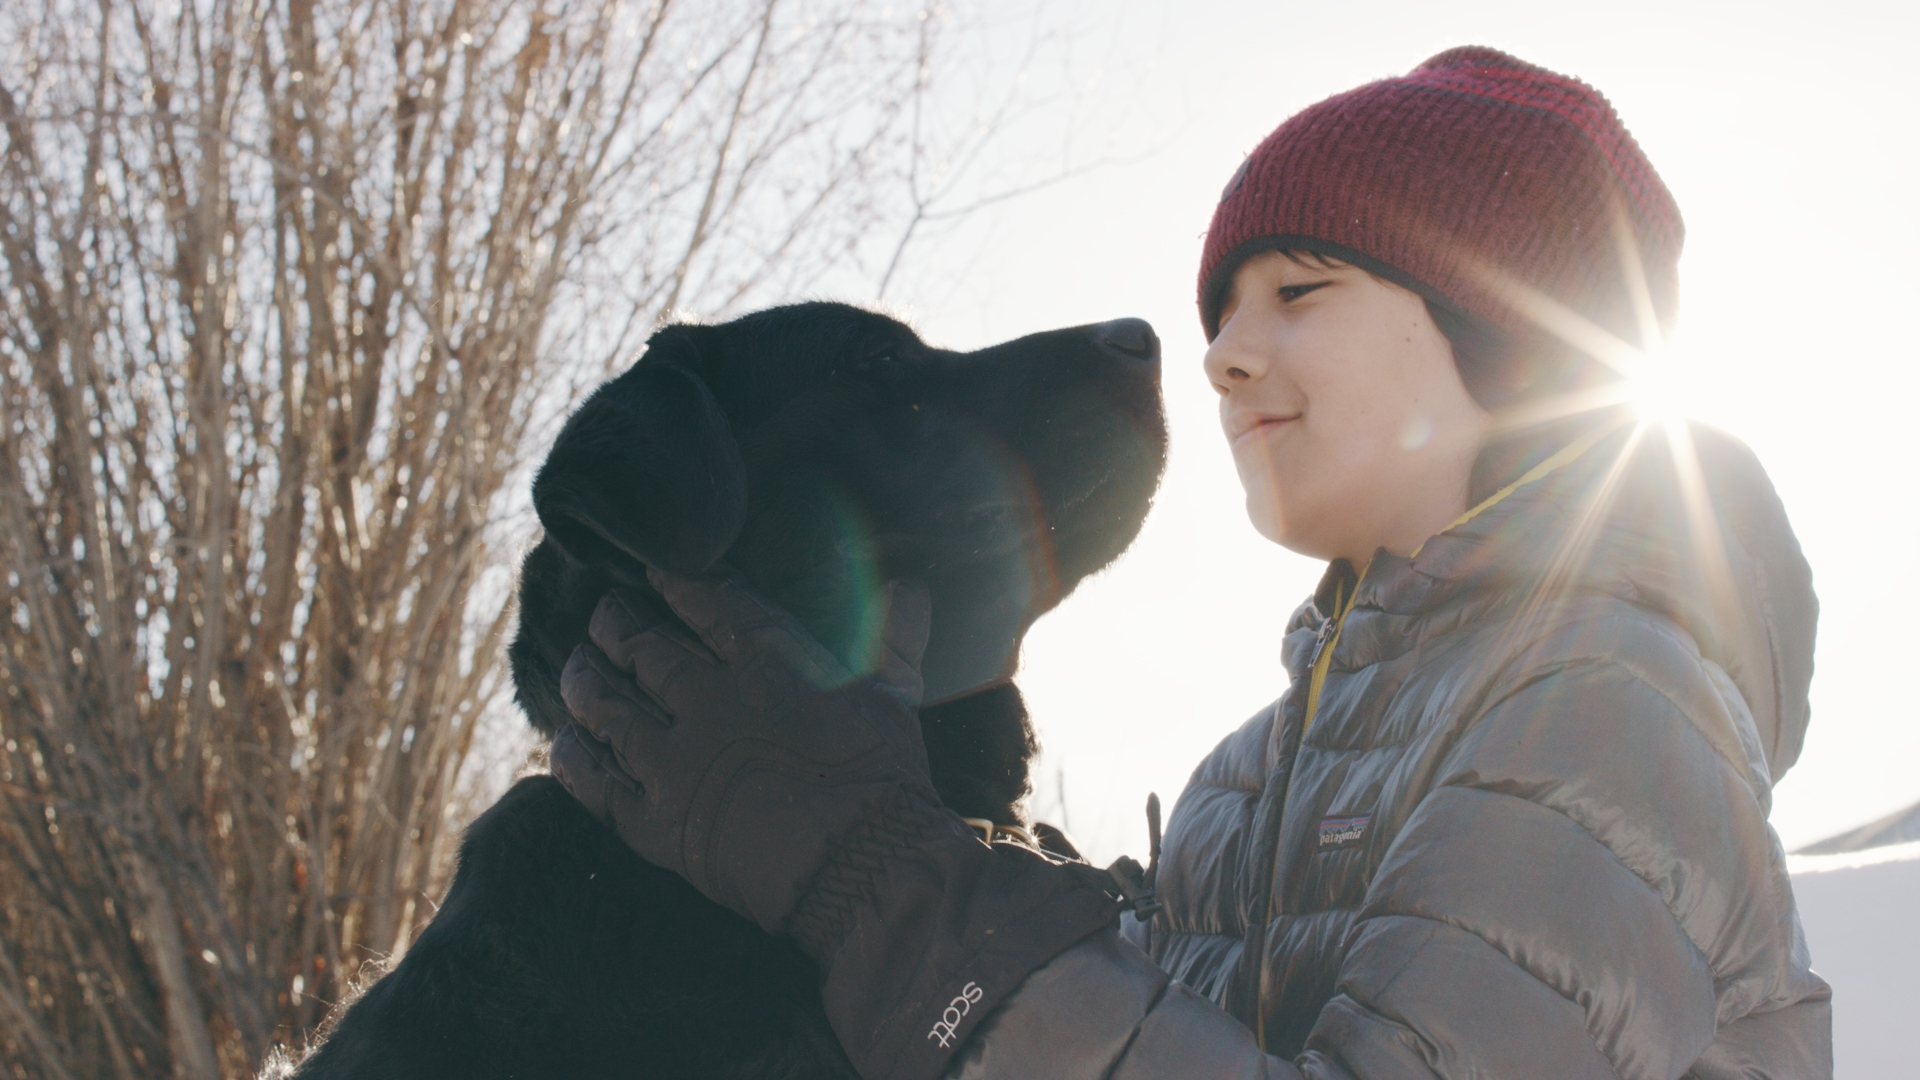 Finn and rizzo outside with flare_1.218.2.jpg